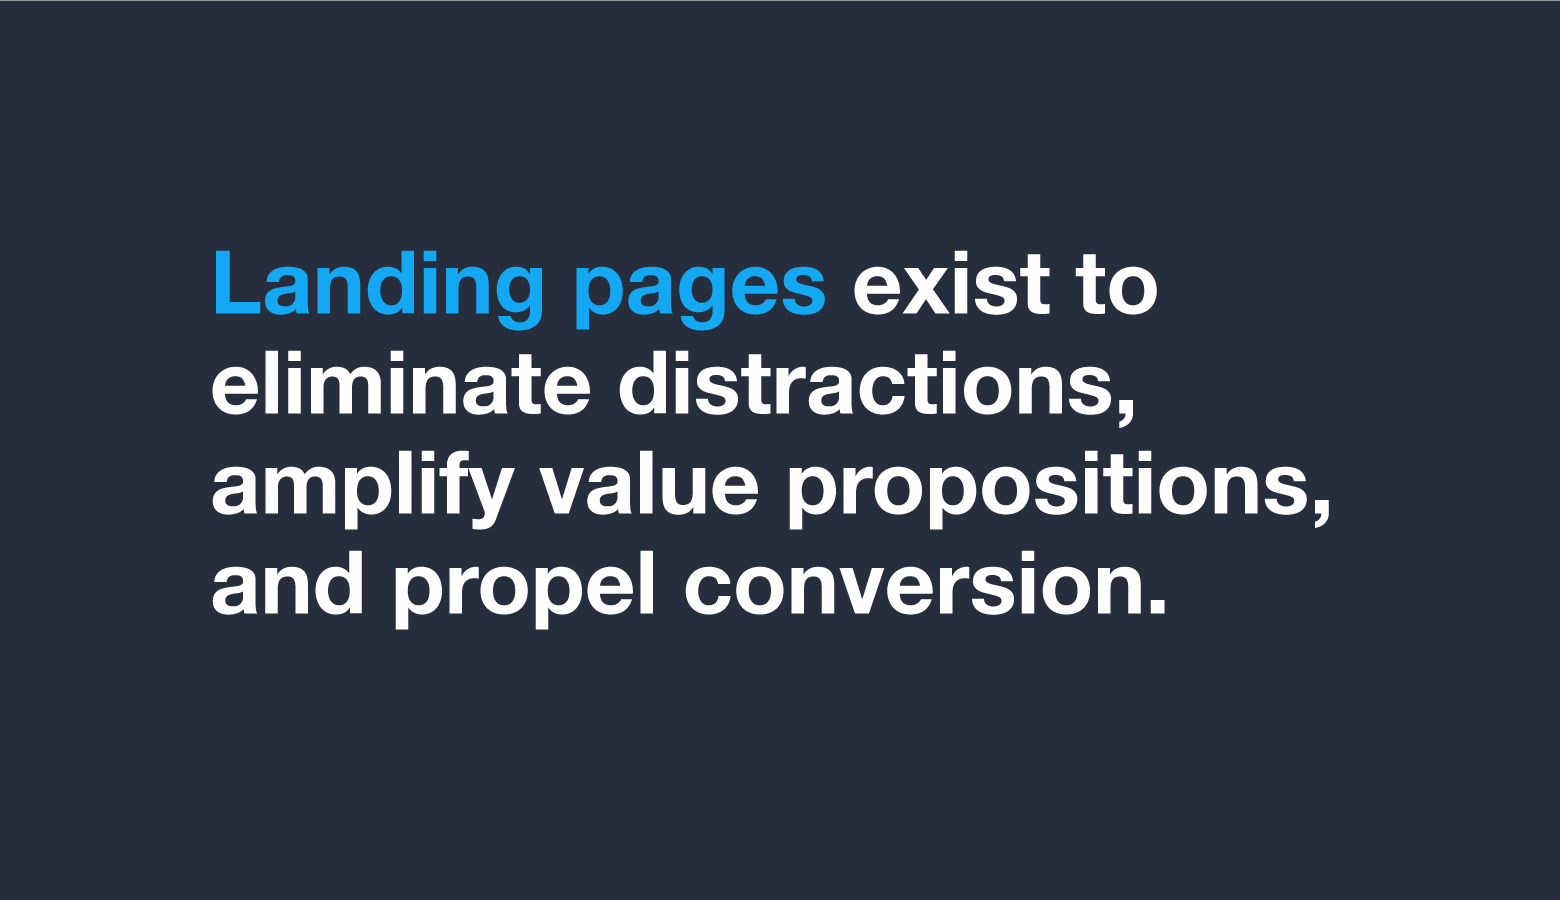 Landing pages limit distractions to highlight value propositions.